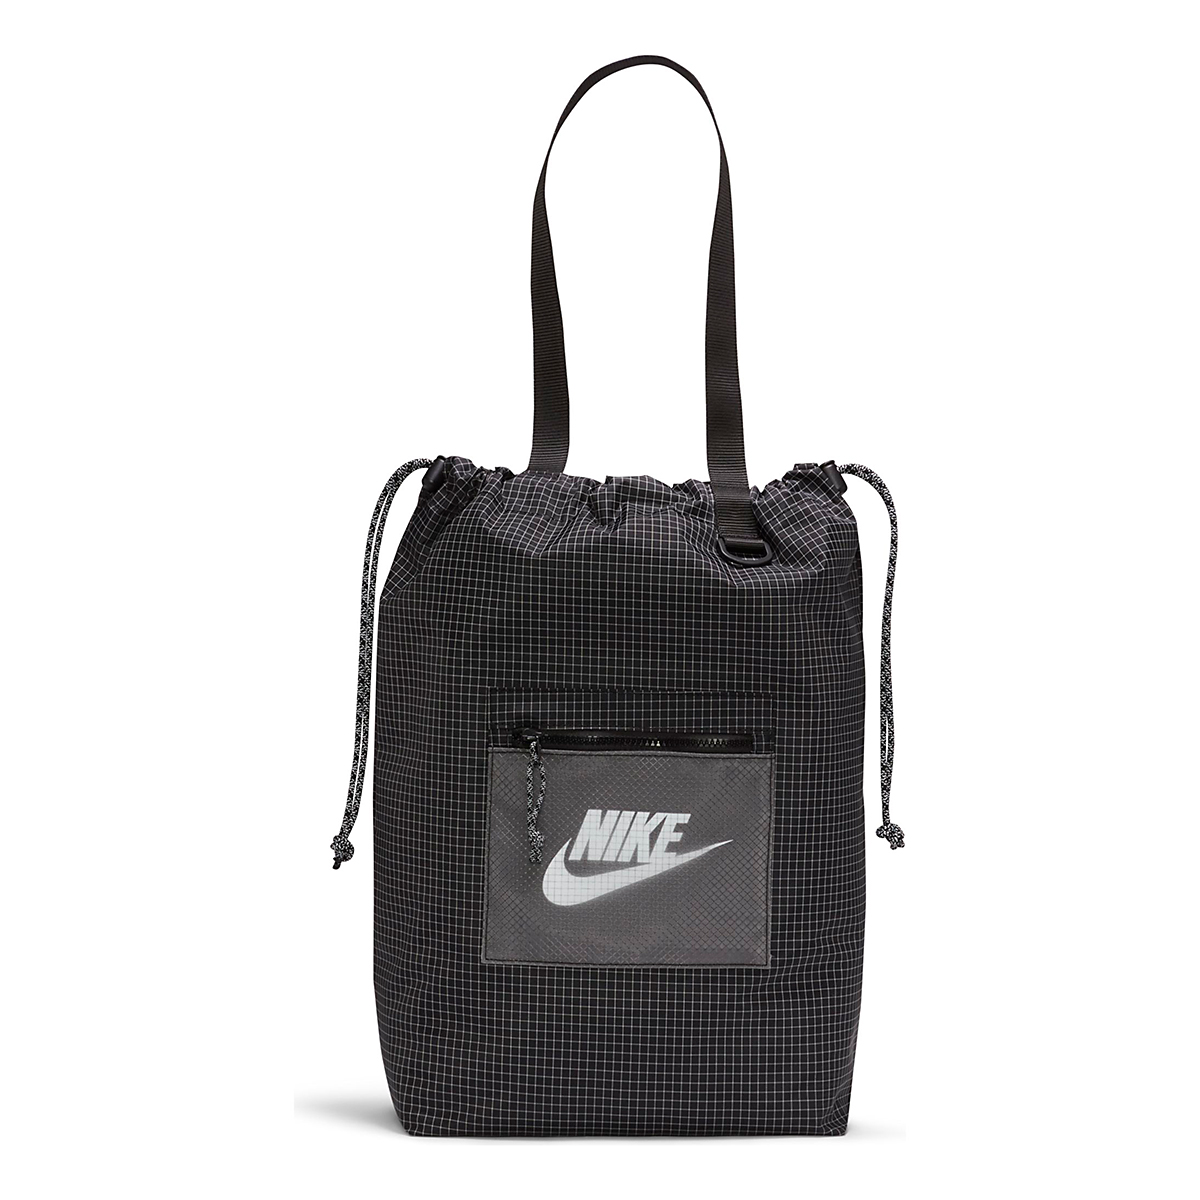 Nike Heritage Tote Bag - Color: Black/White, Black/White, large, image 1